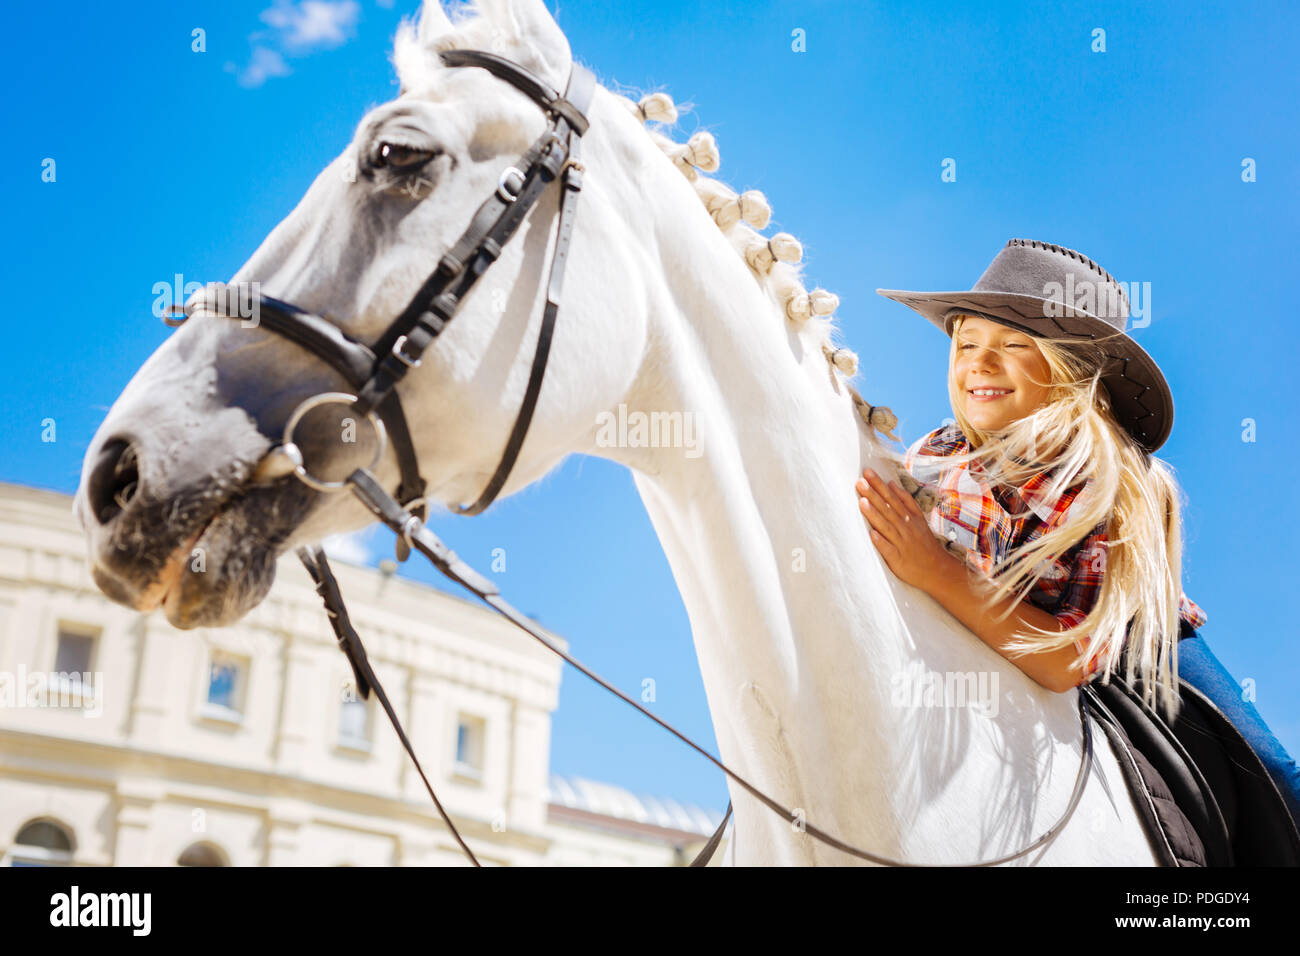 Smiling cute cowboy girl leaning on her white racing horse - Stock Image